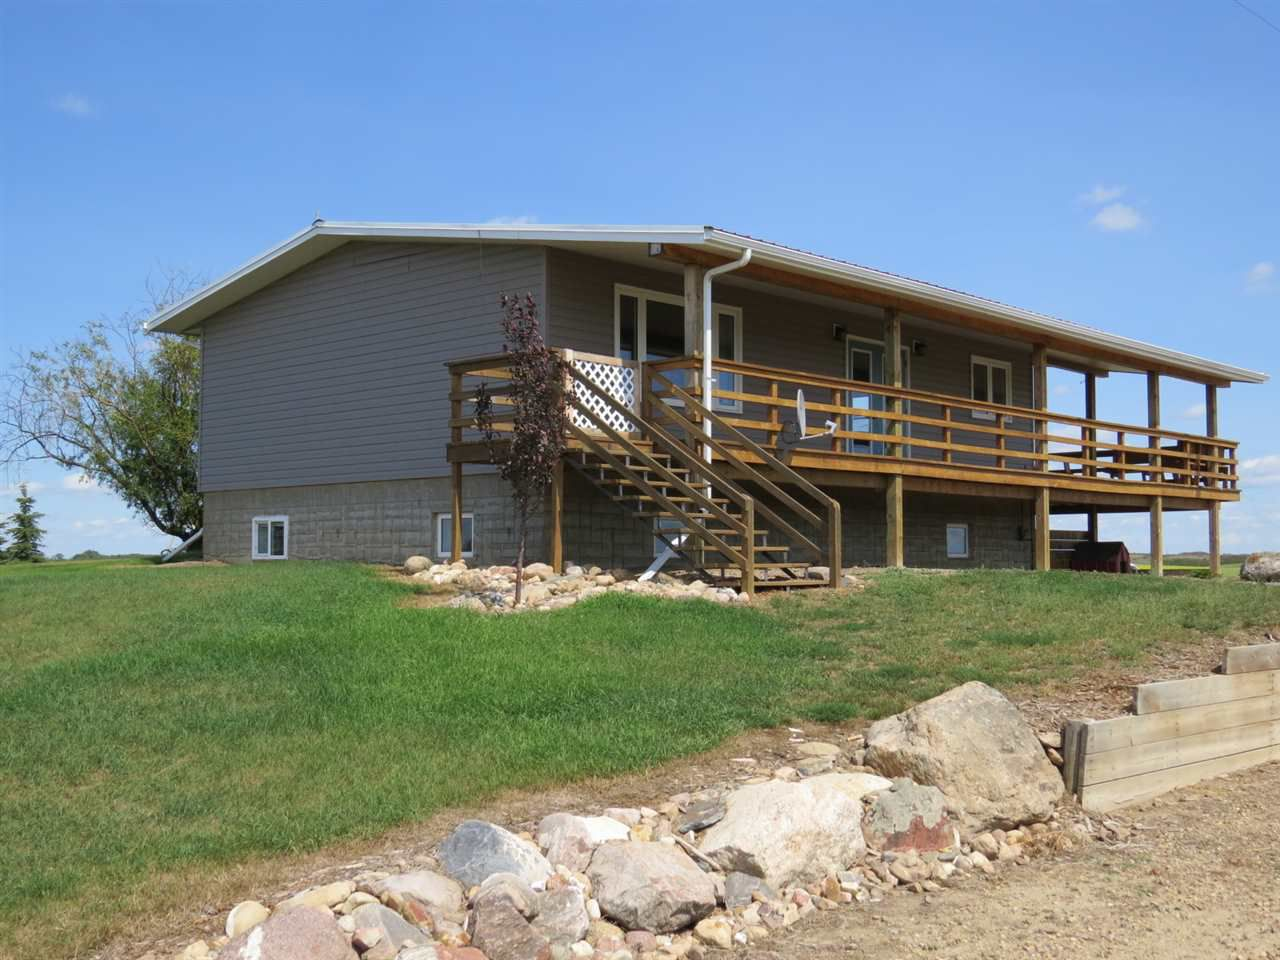 Main Photo: 45513 Hwy 870: Rural Flagstaff County House for sale : MLS®# E4123804